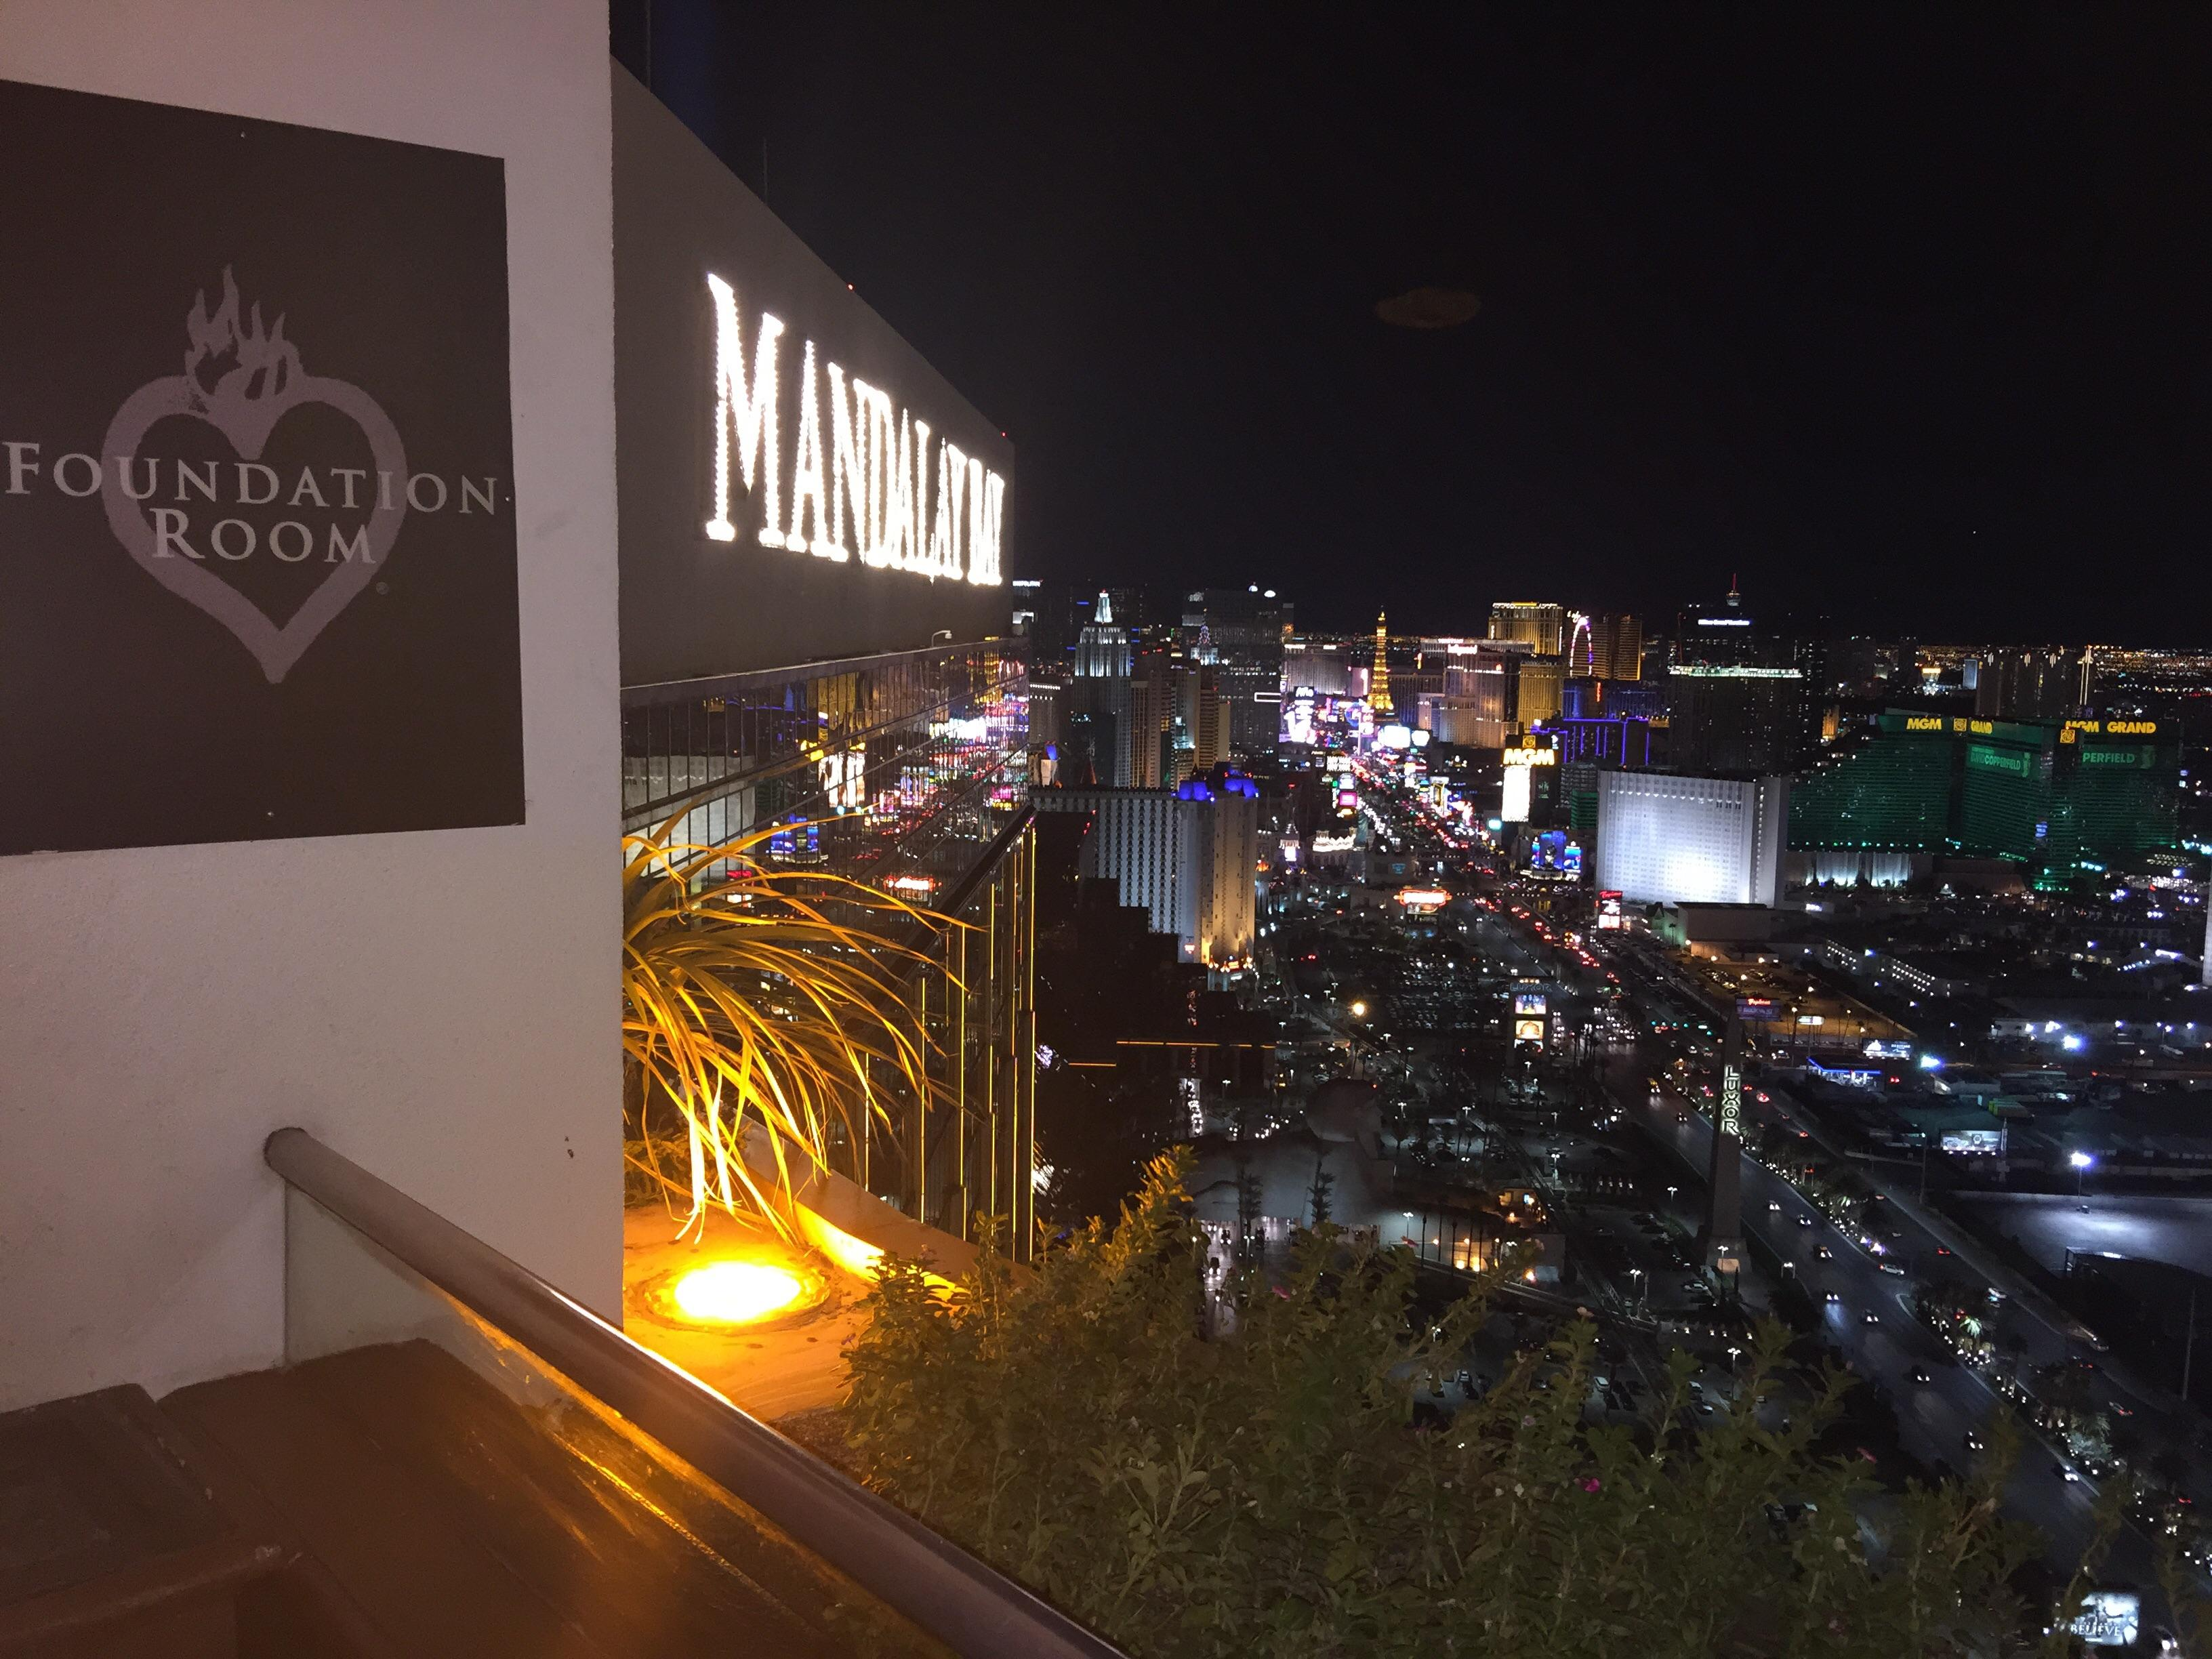 Foundation Room 63rd floor of Mandalay Bay. A great view of the Las Vegas Strip.